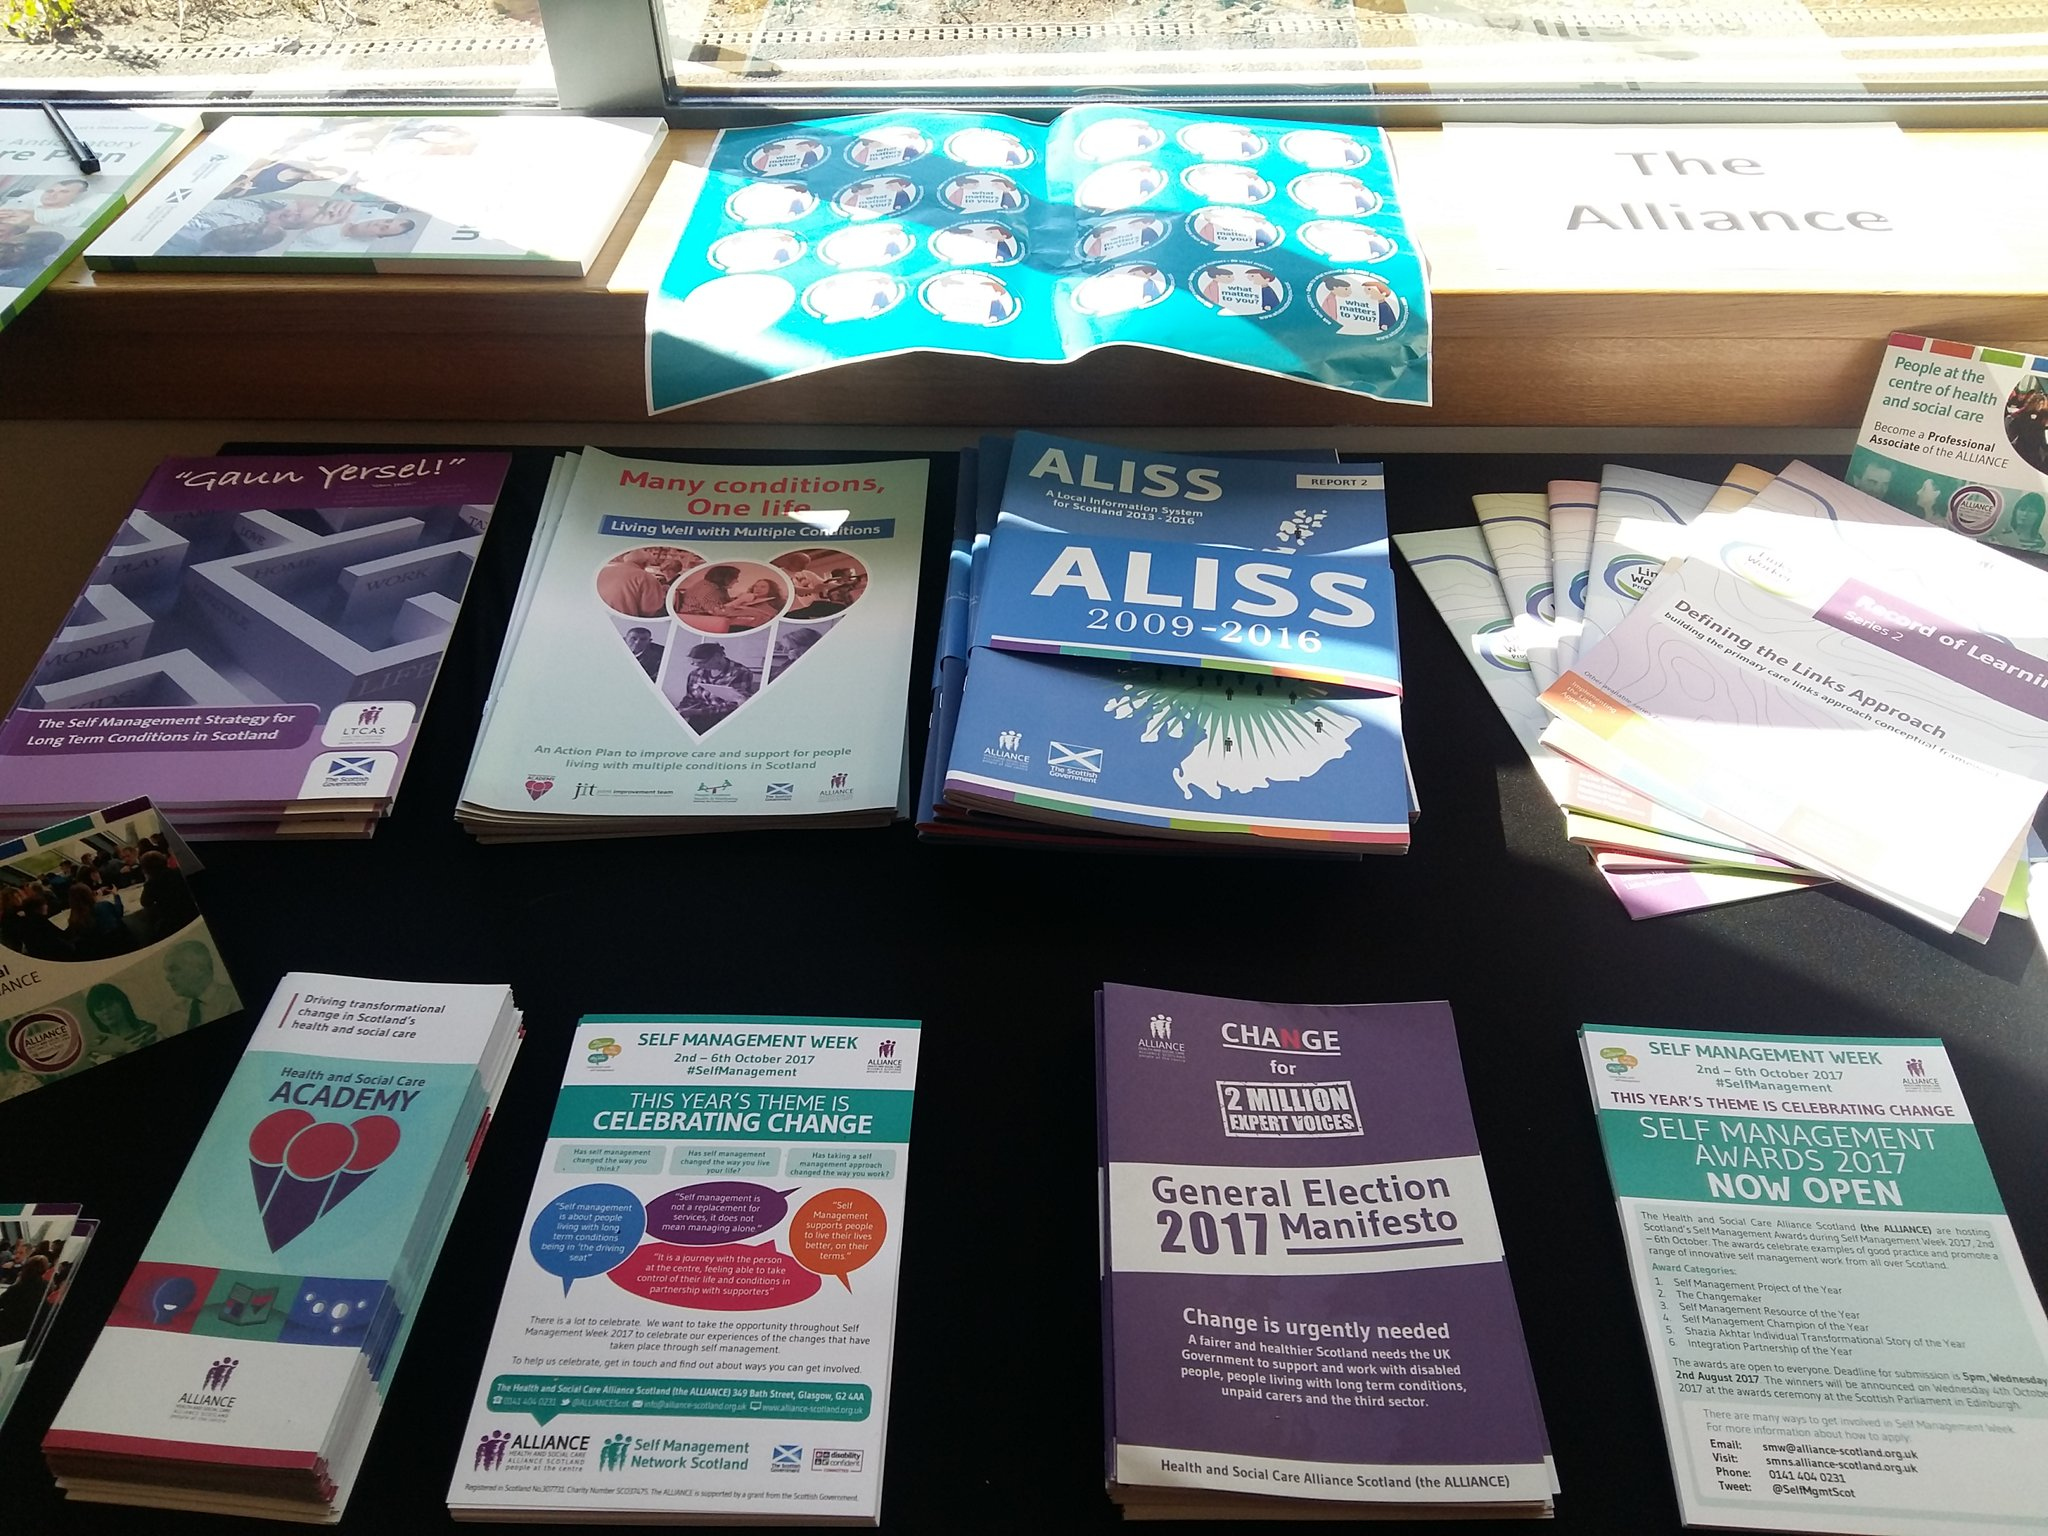 The @ALLIANCEScot table set up at the #ACPLaunch, doing some social reporting later come chat! https://t.co/xA3Cw63DMH